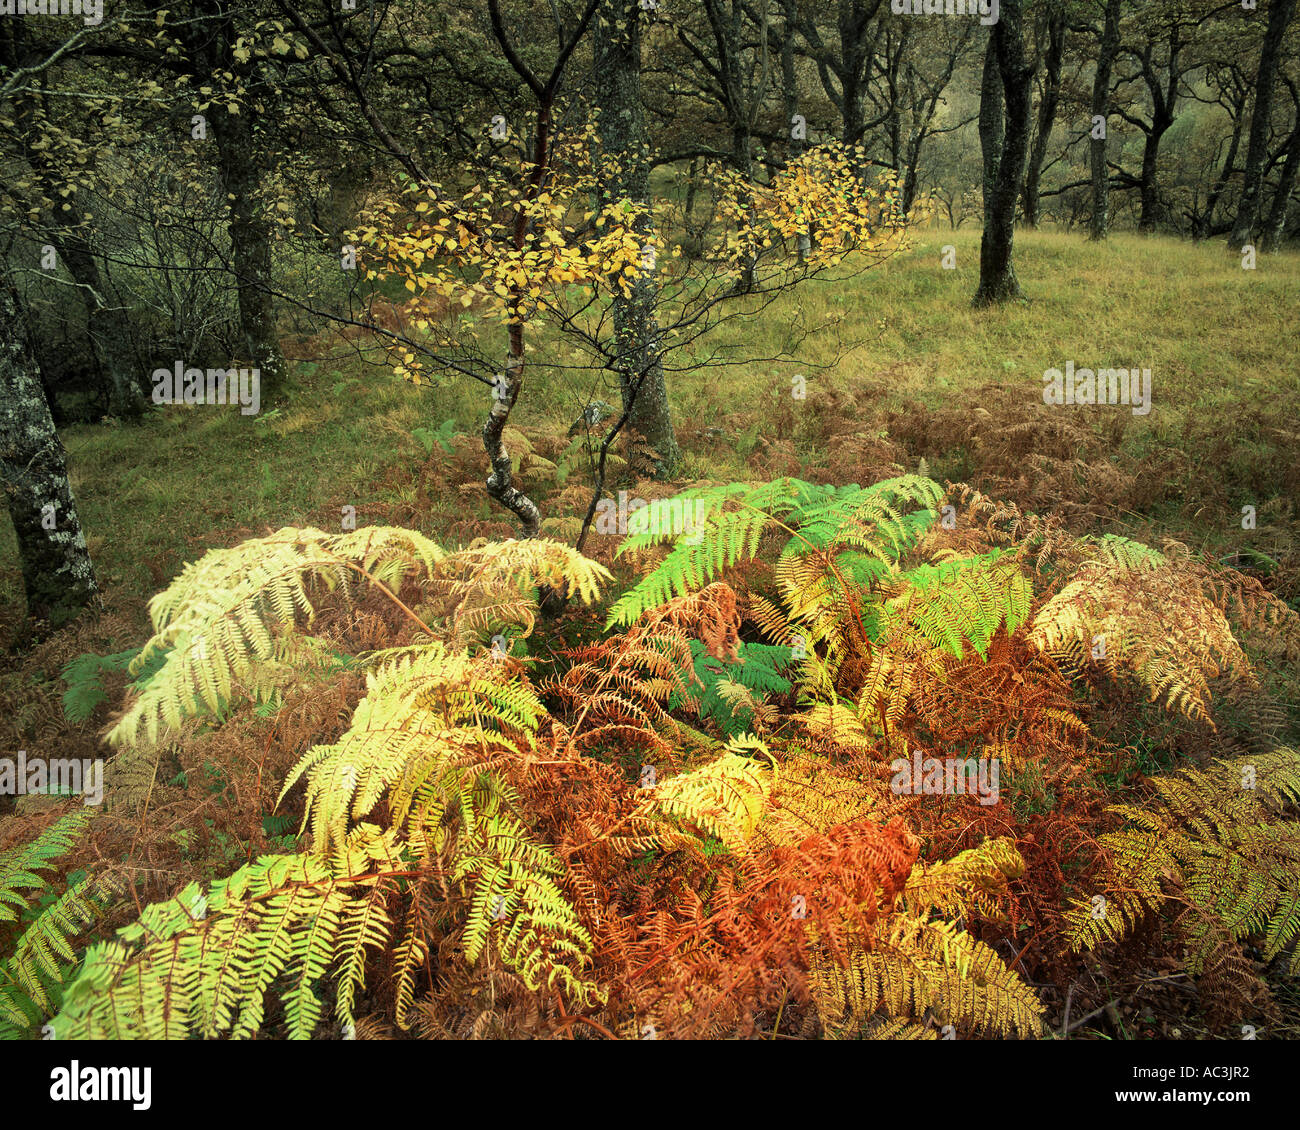 GB - SCOTLAND:  Autmn Woods in the Highlands - Stock Image